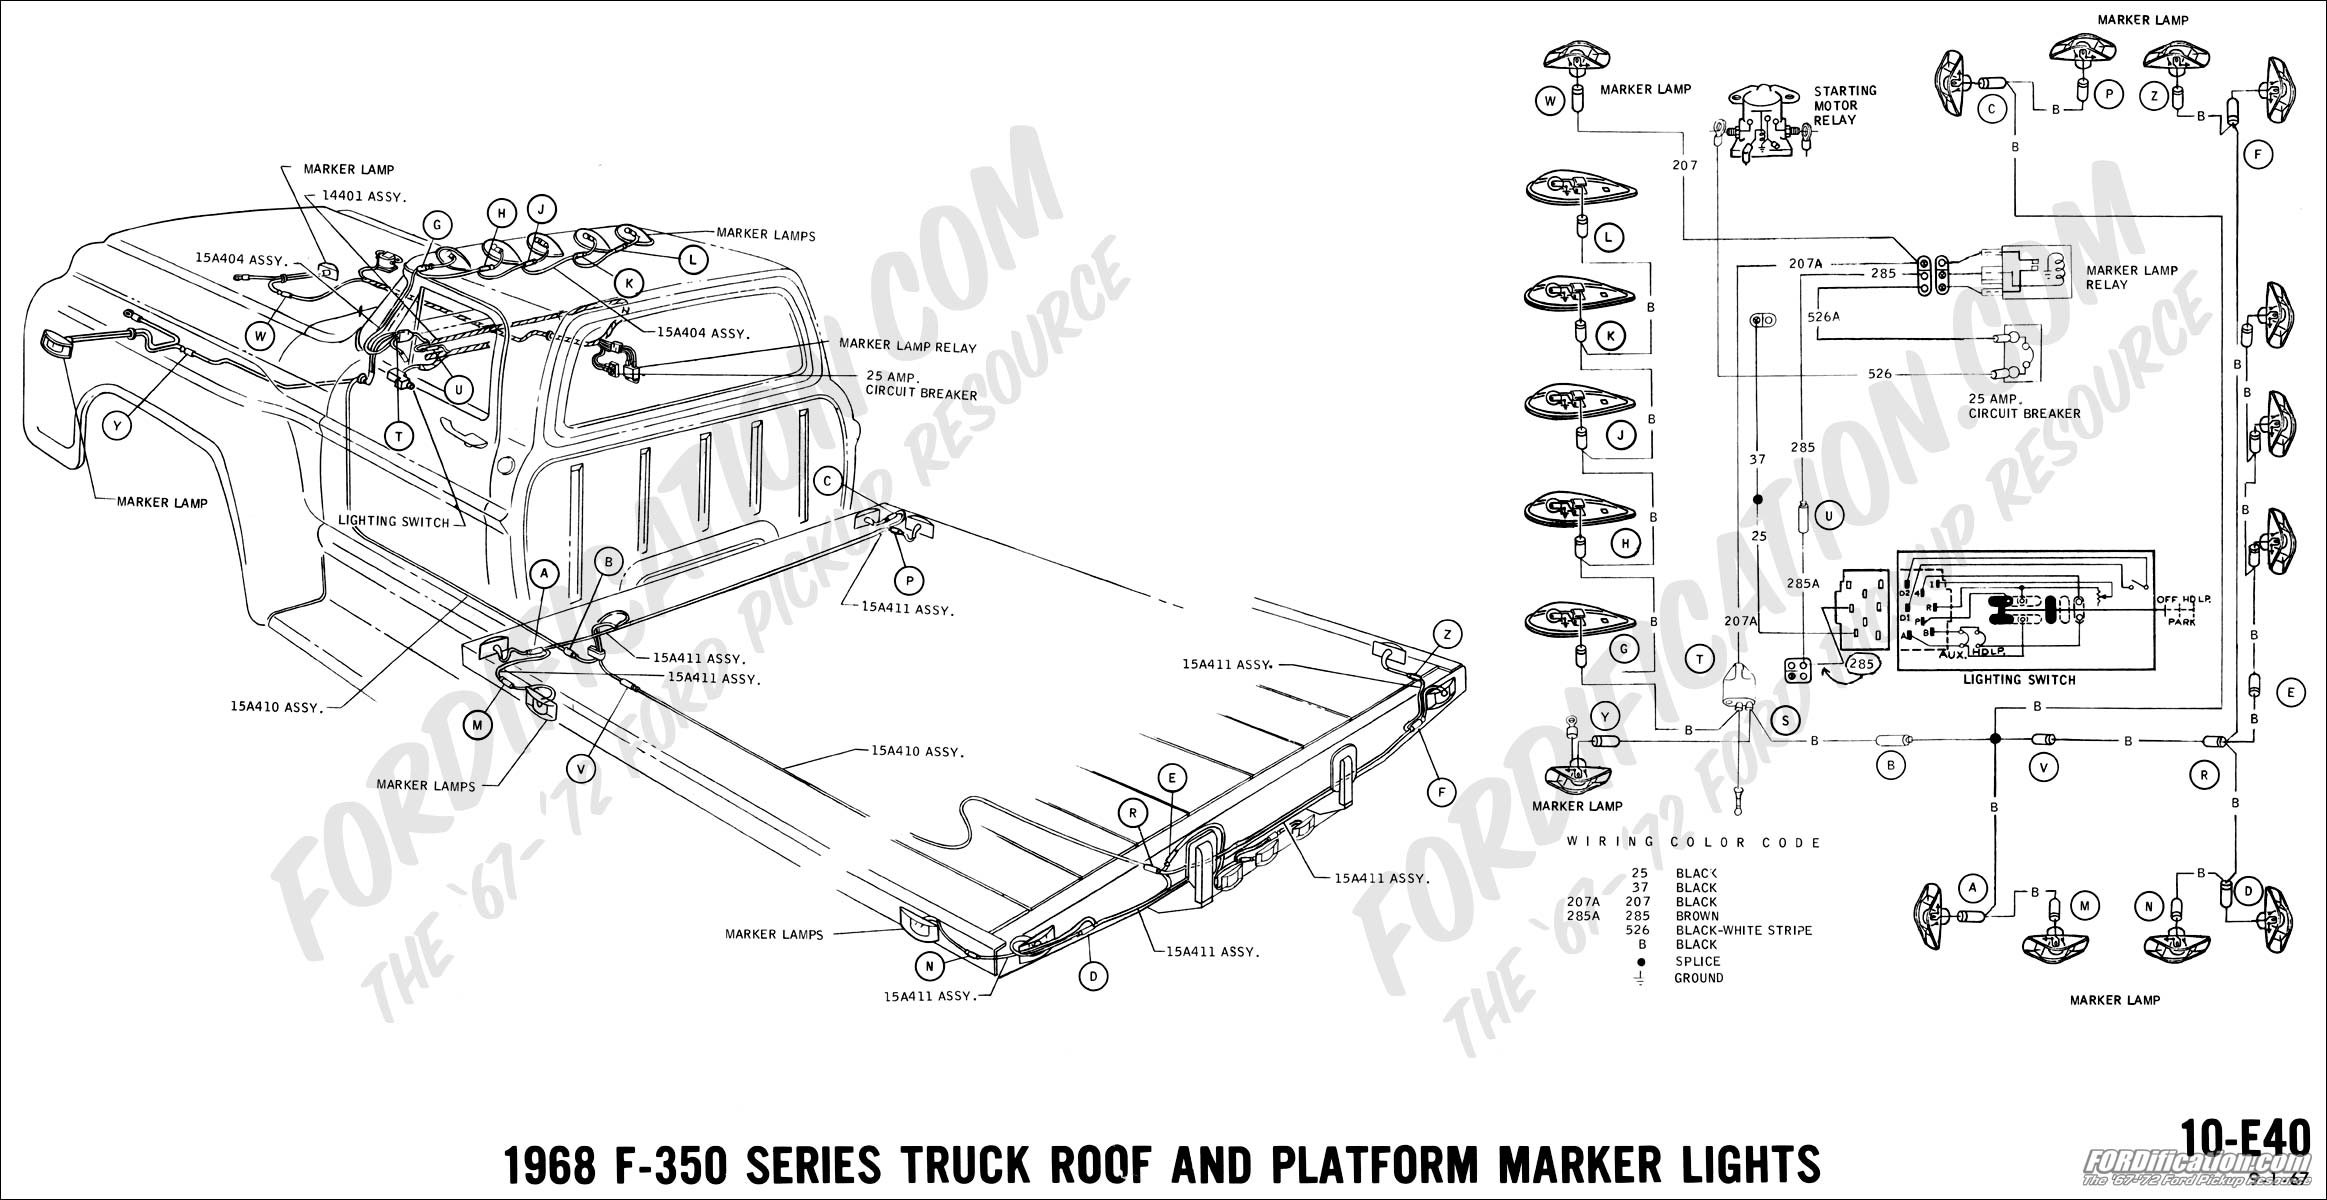 Wiring Diagram For 1997 Kenworth W900 Wiring-Diagram